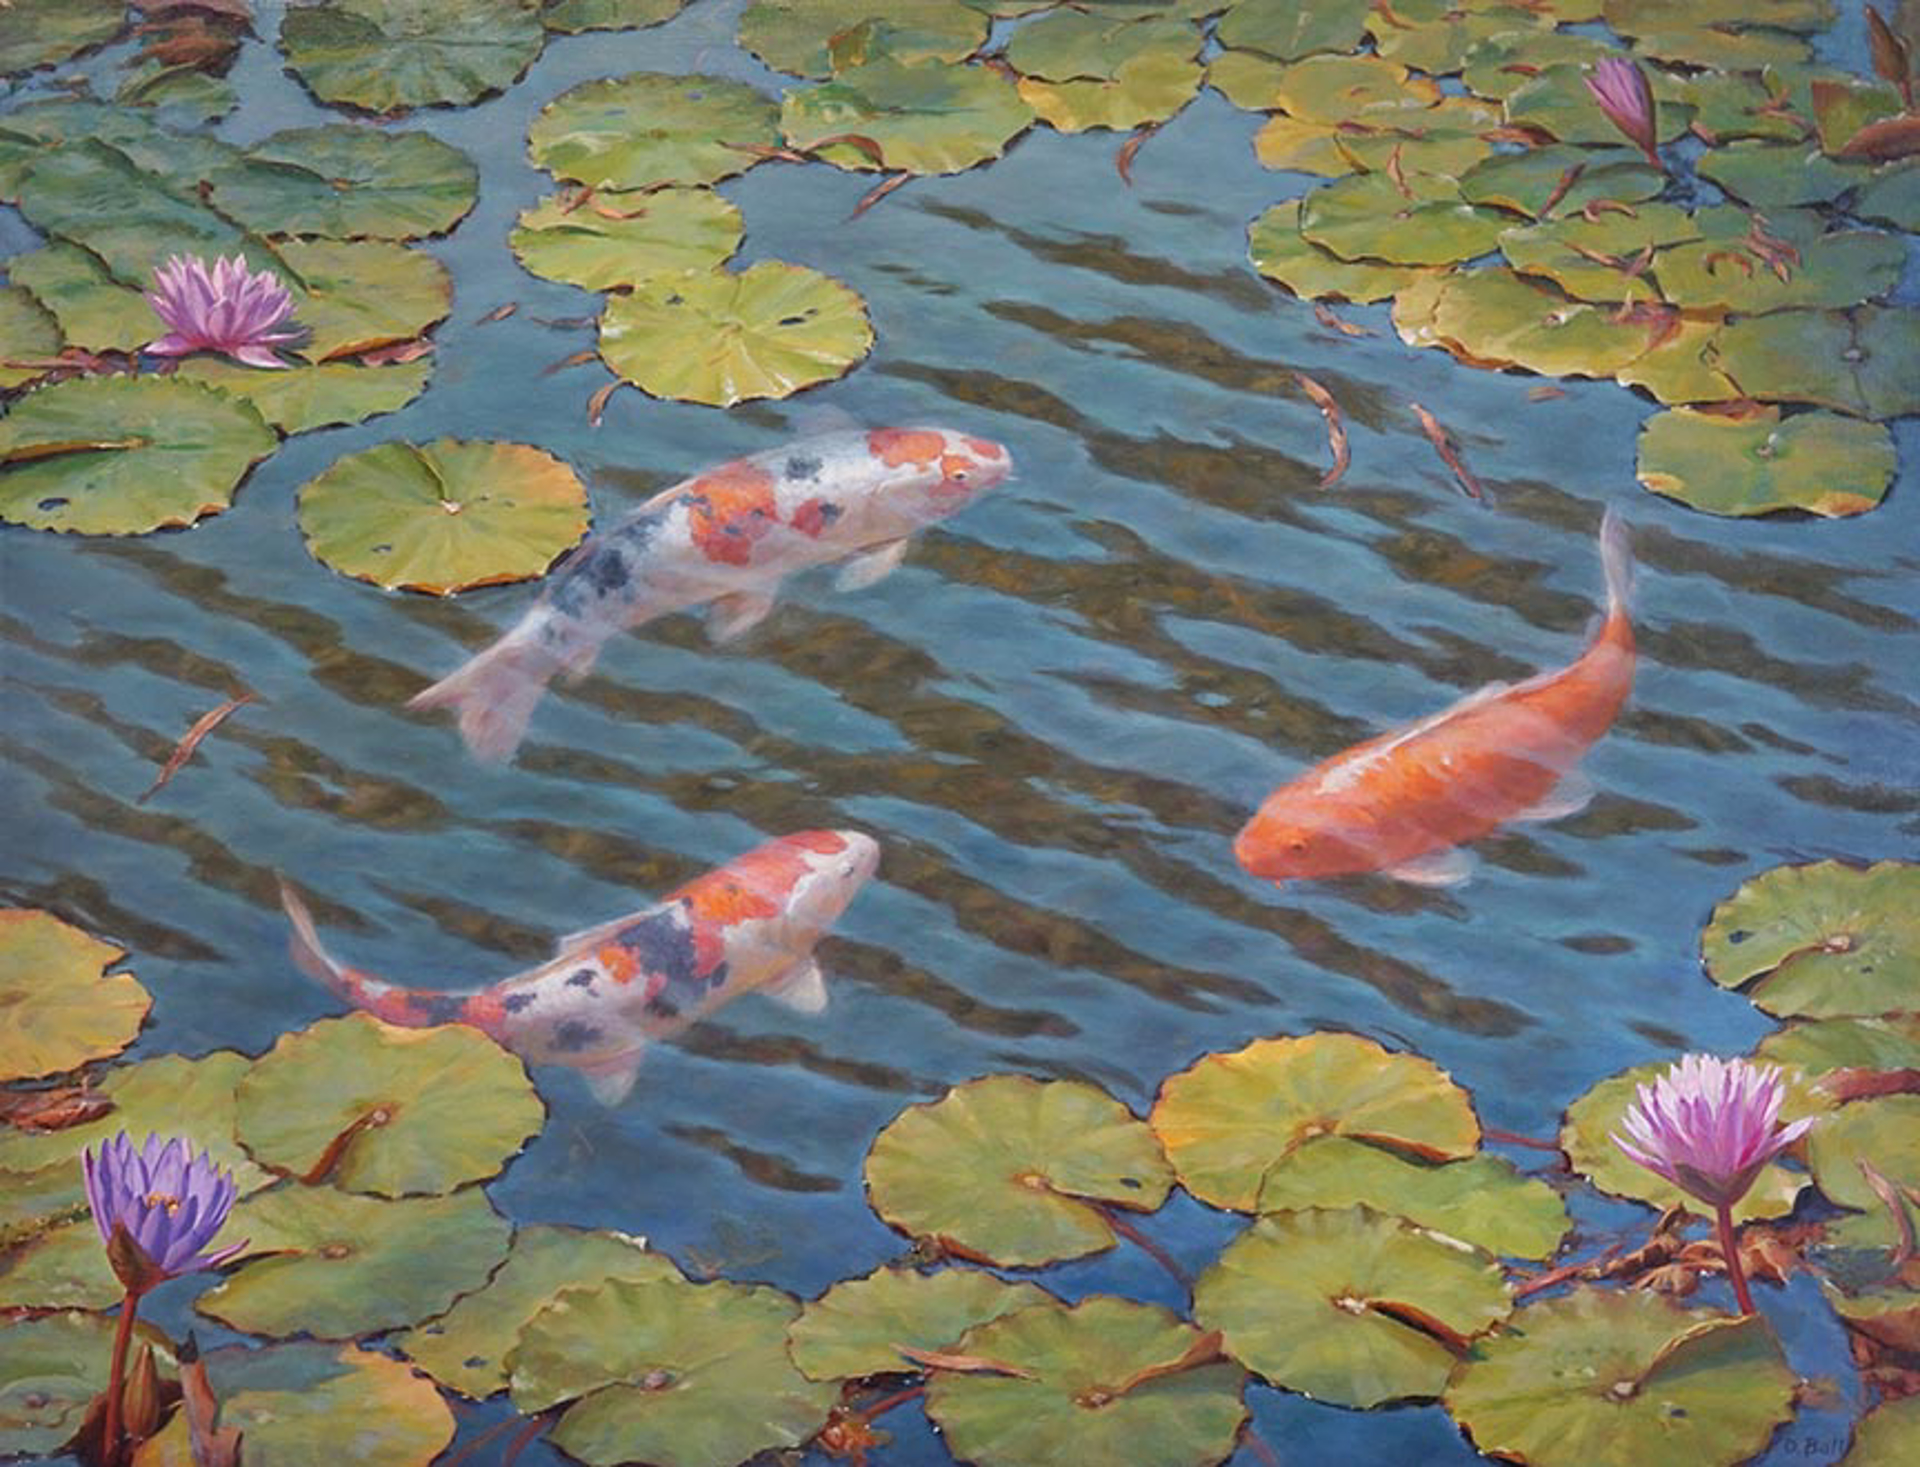 Koi by Douglas Ball